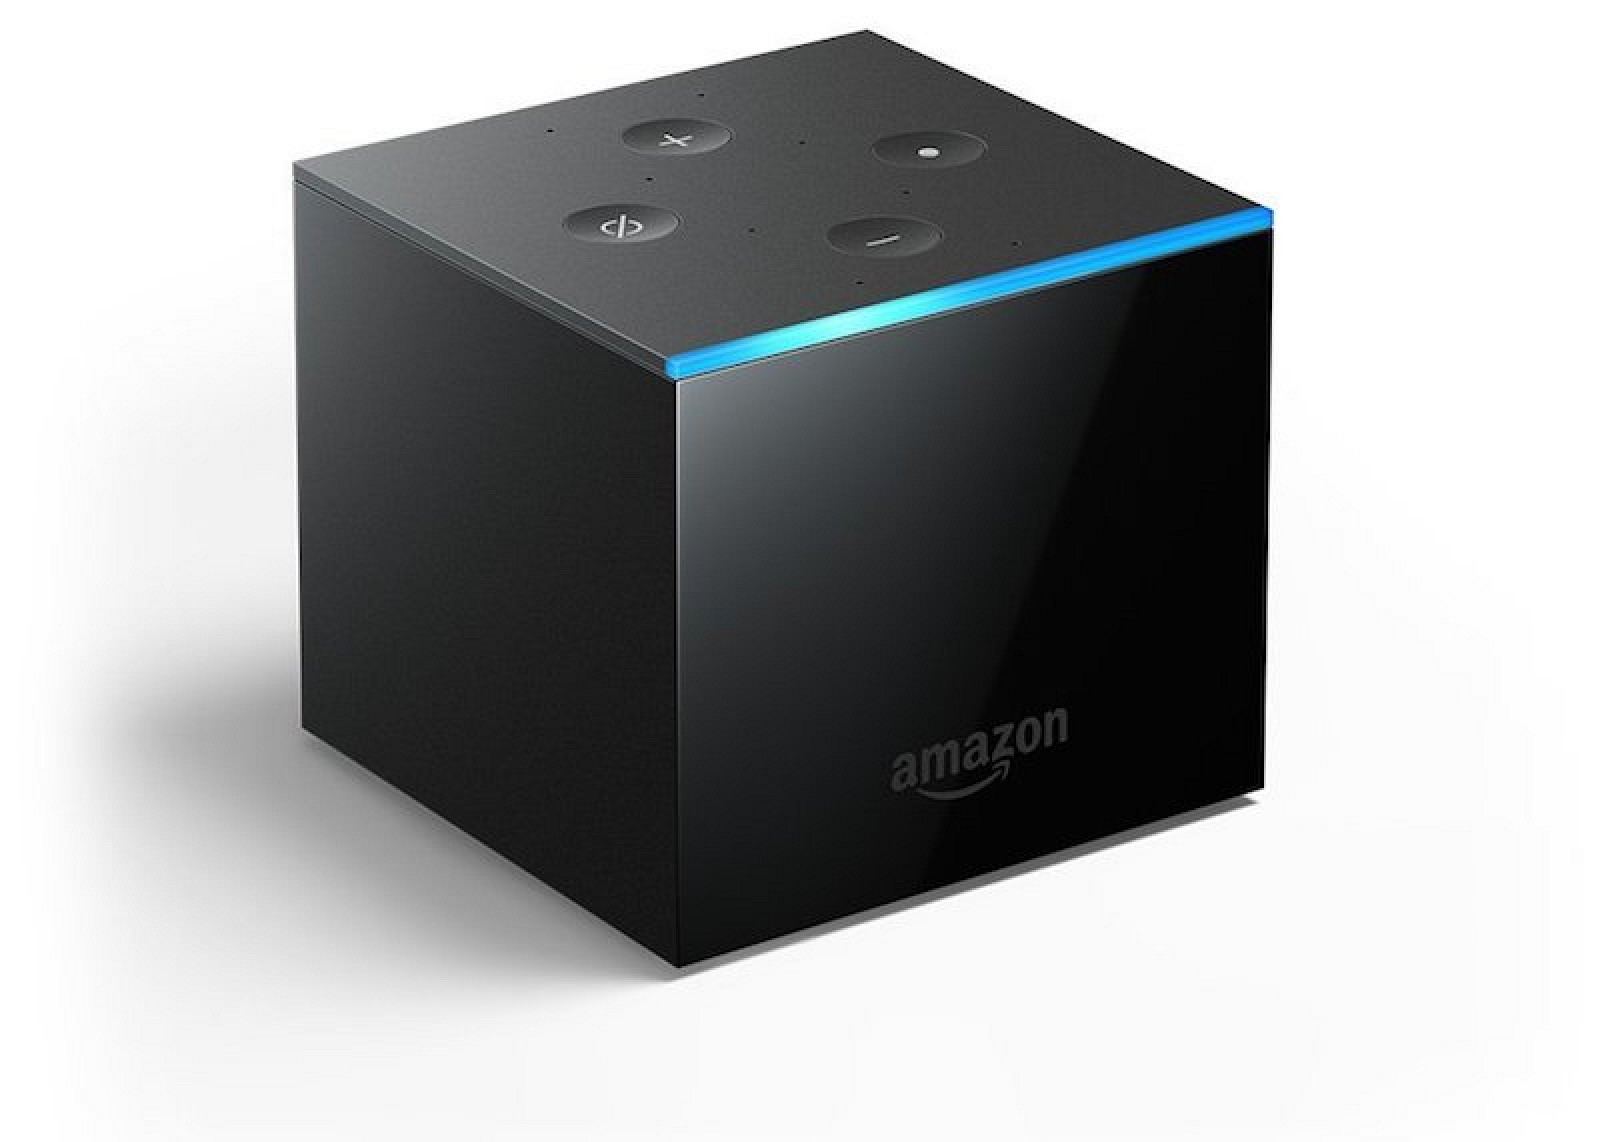 Amazon Reveals 'Fire TV Cube' With Support for 4K, HDMI ...